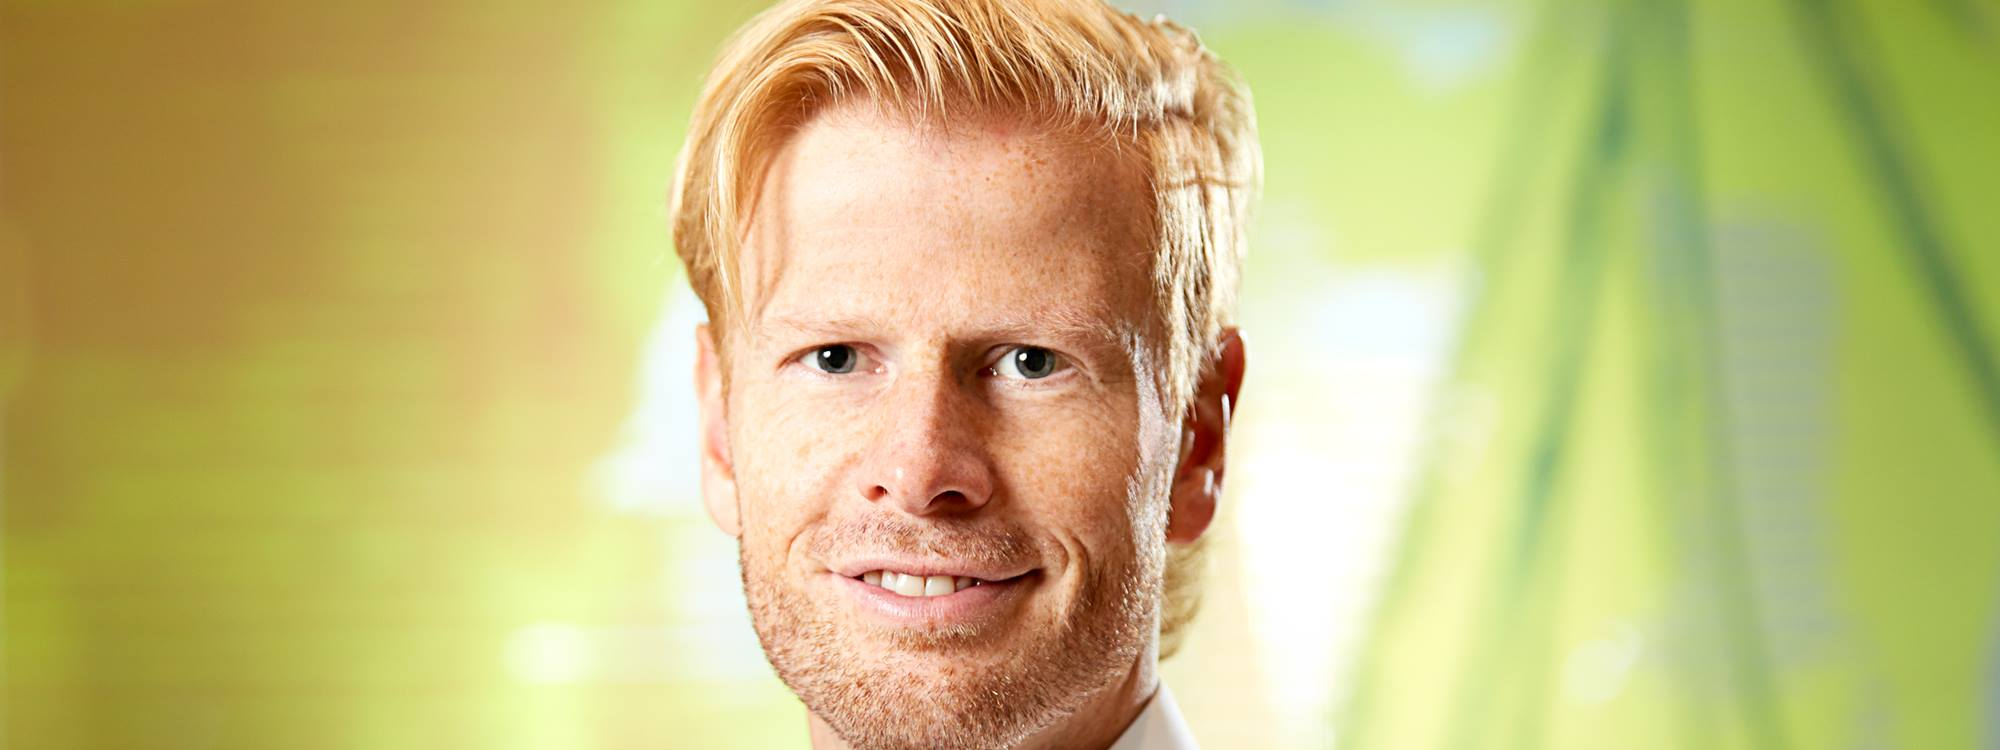 Meet Troels Nørgaard Laursen our Health & Performance Nutrition director